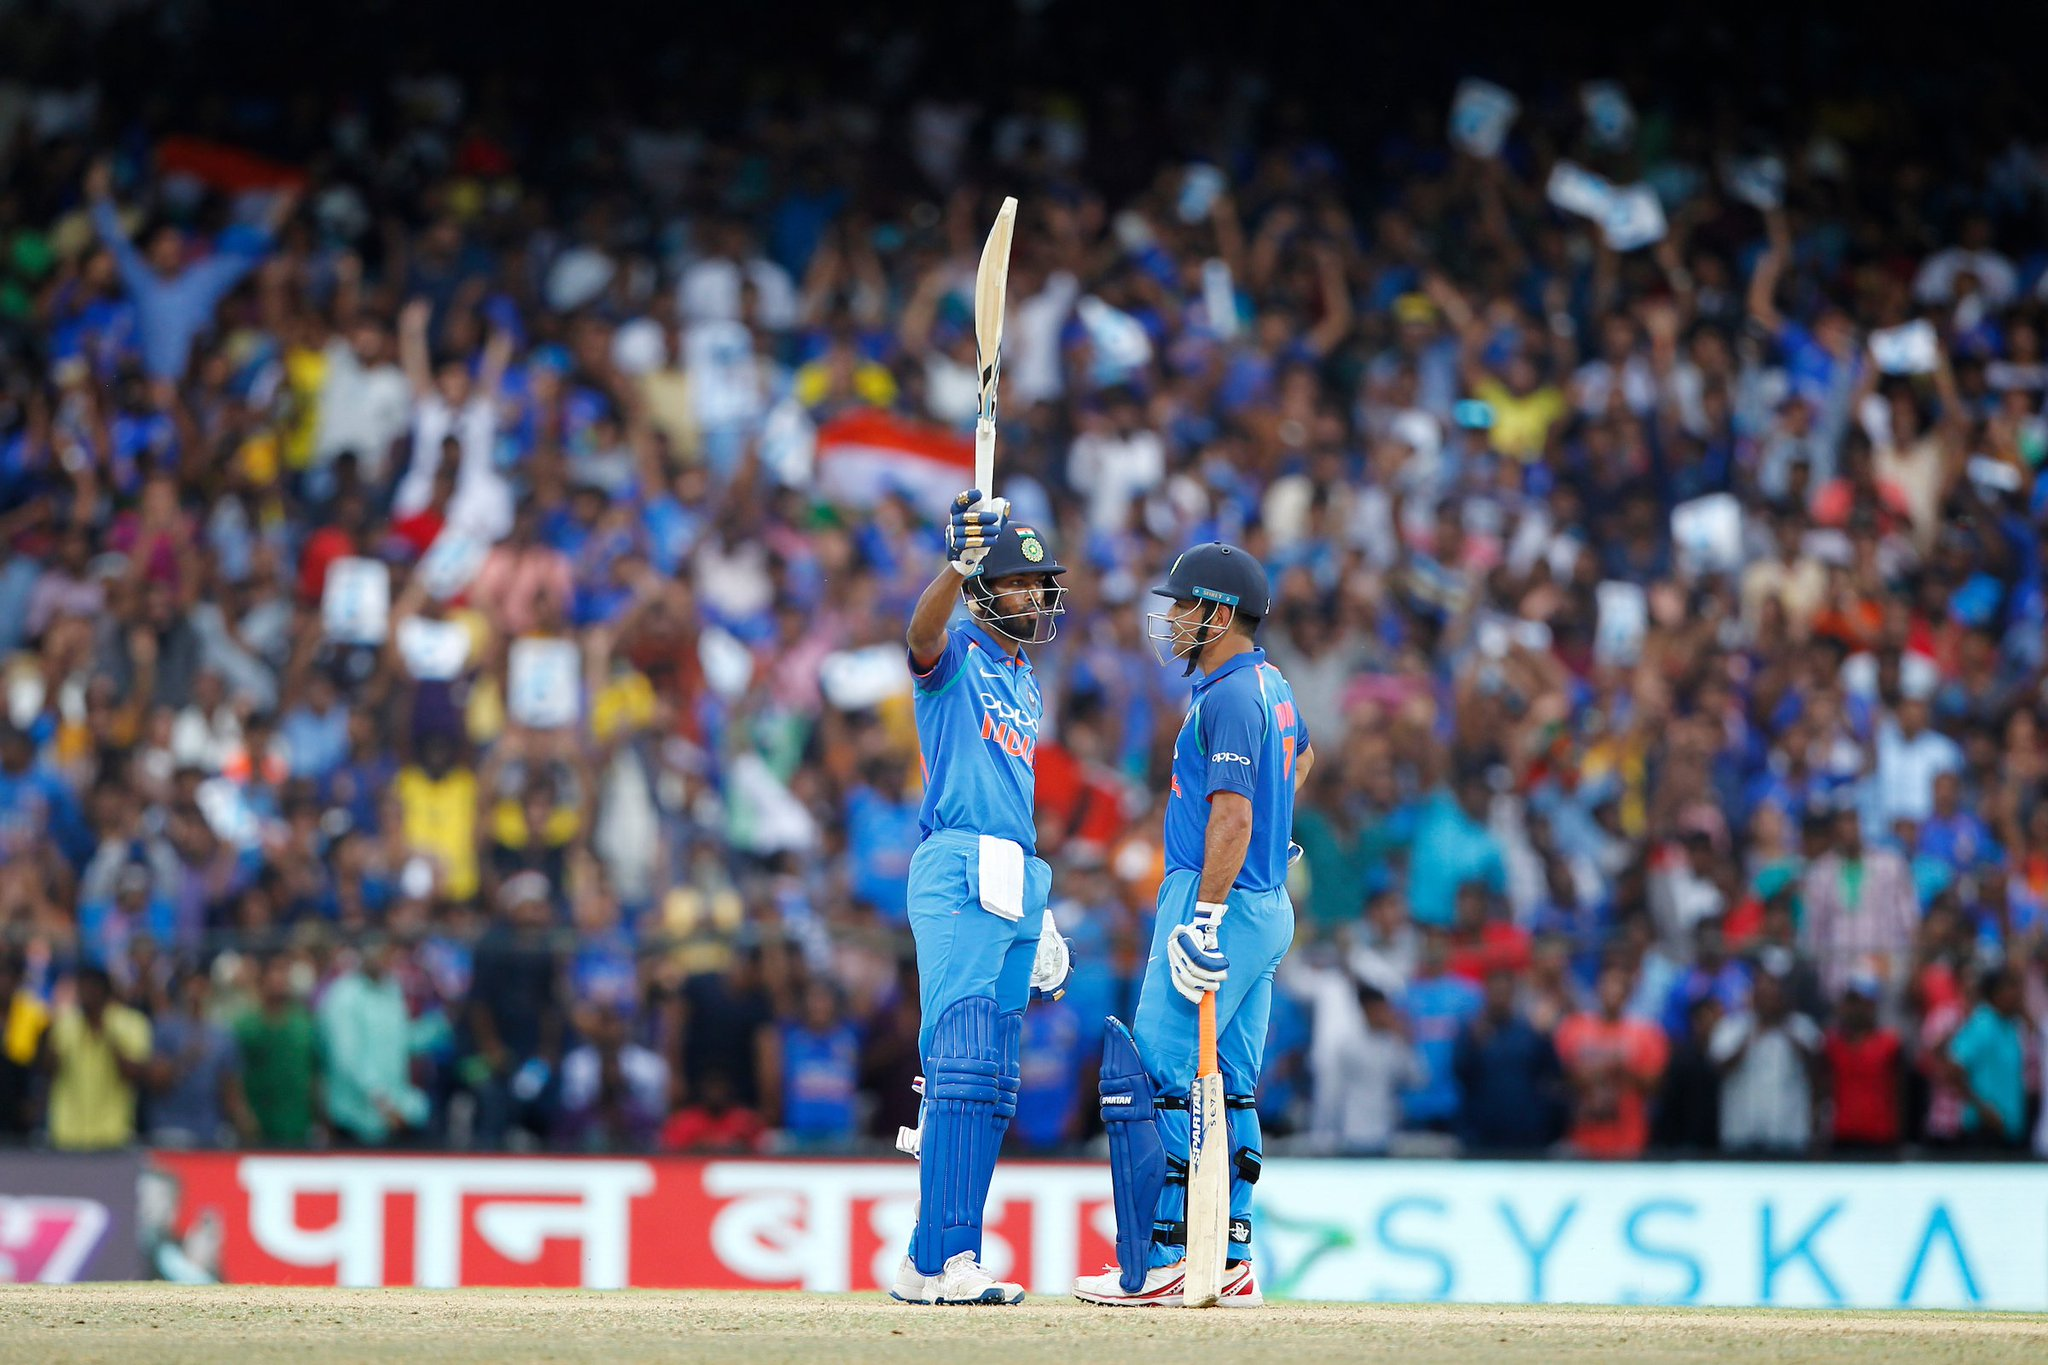 Get a live view of the match with ball by ball updates pictures videos as it unfolds